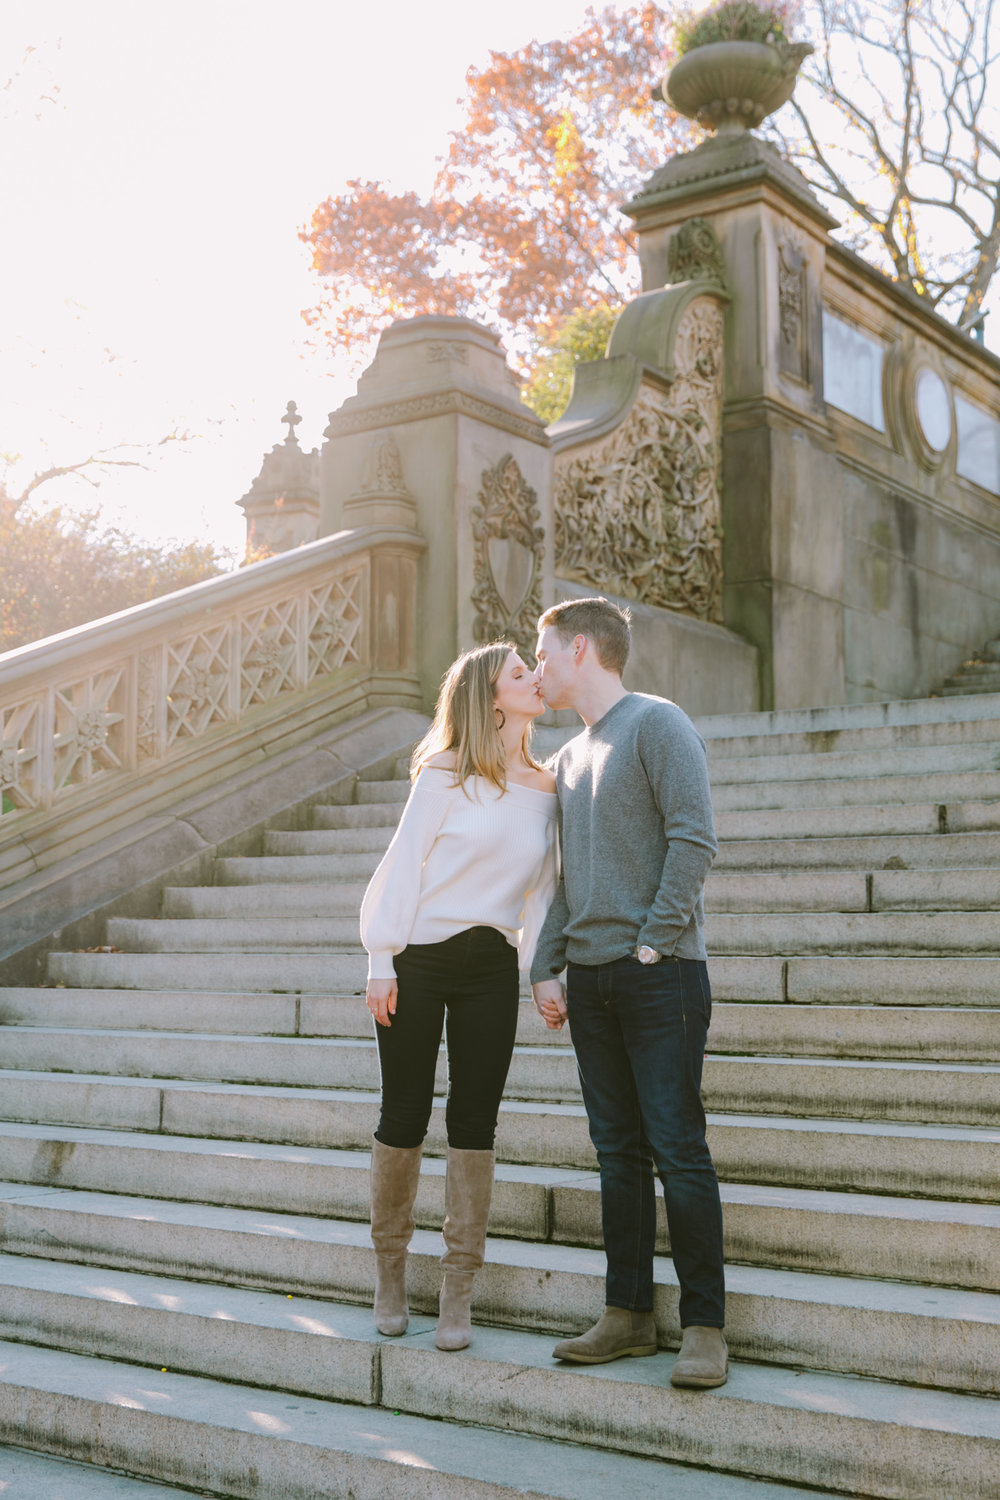 Central-park-fall-engagement-session-by Tanya Isaeva-37.jpg